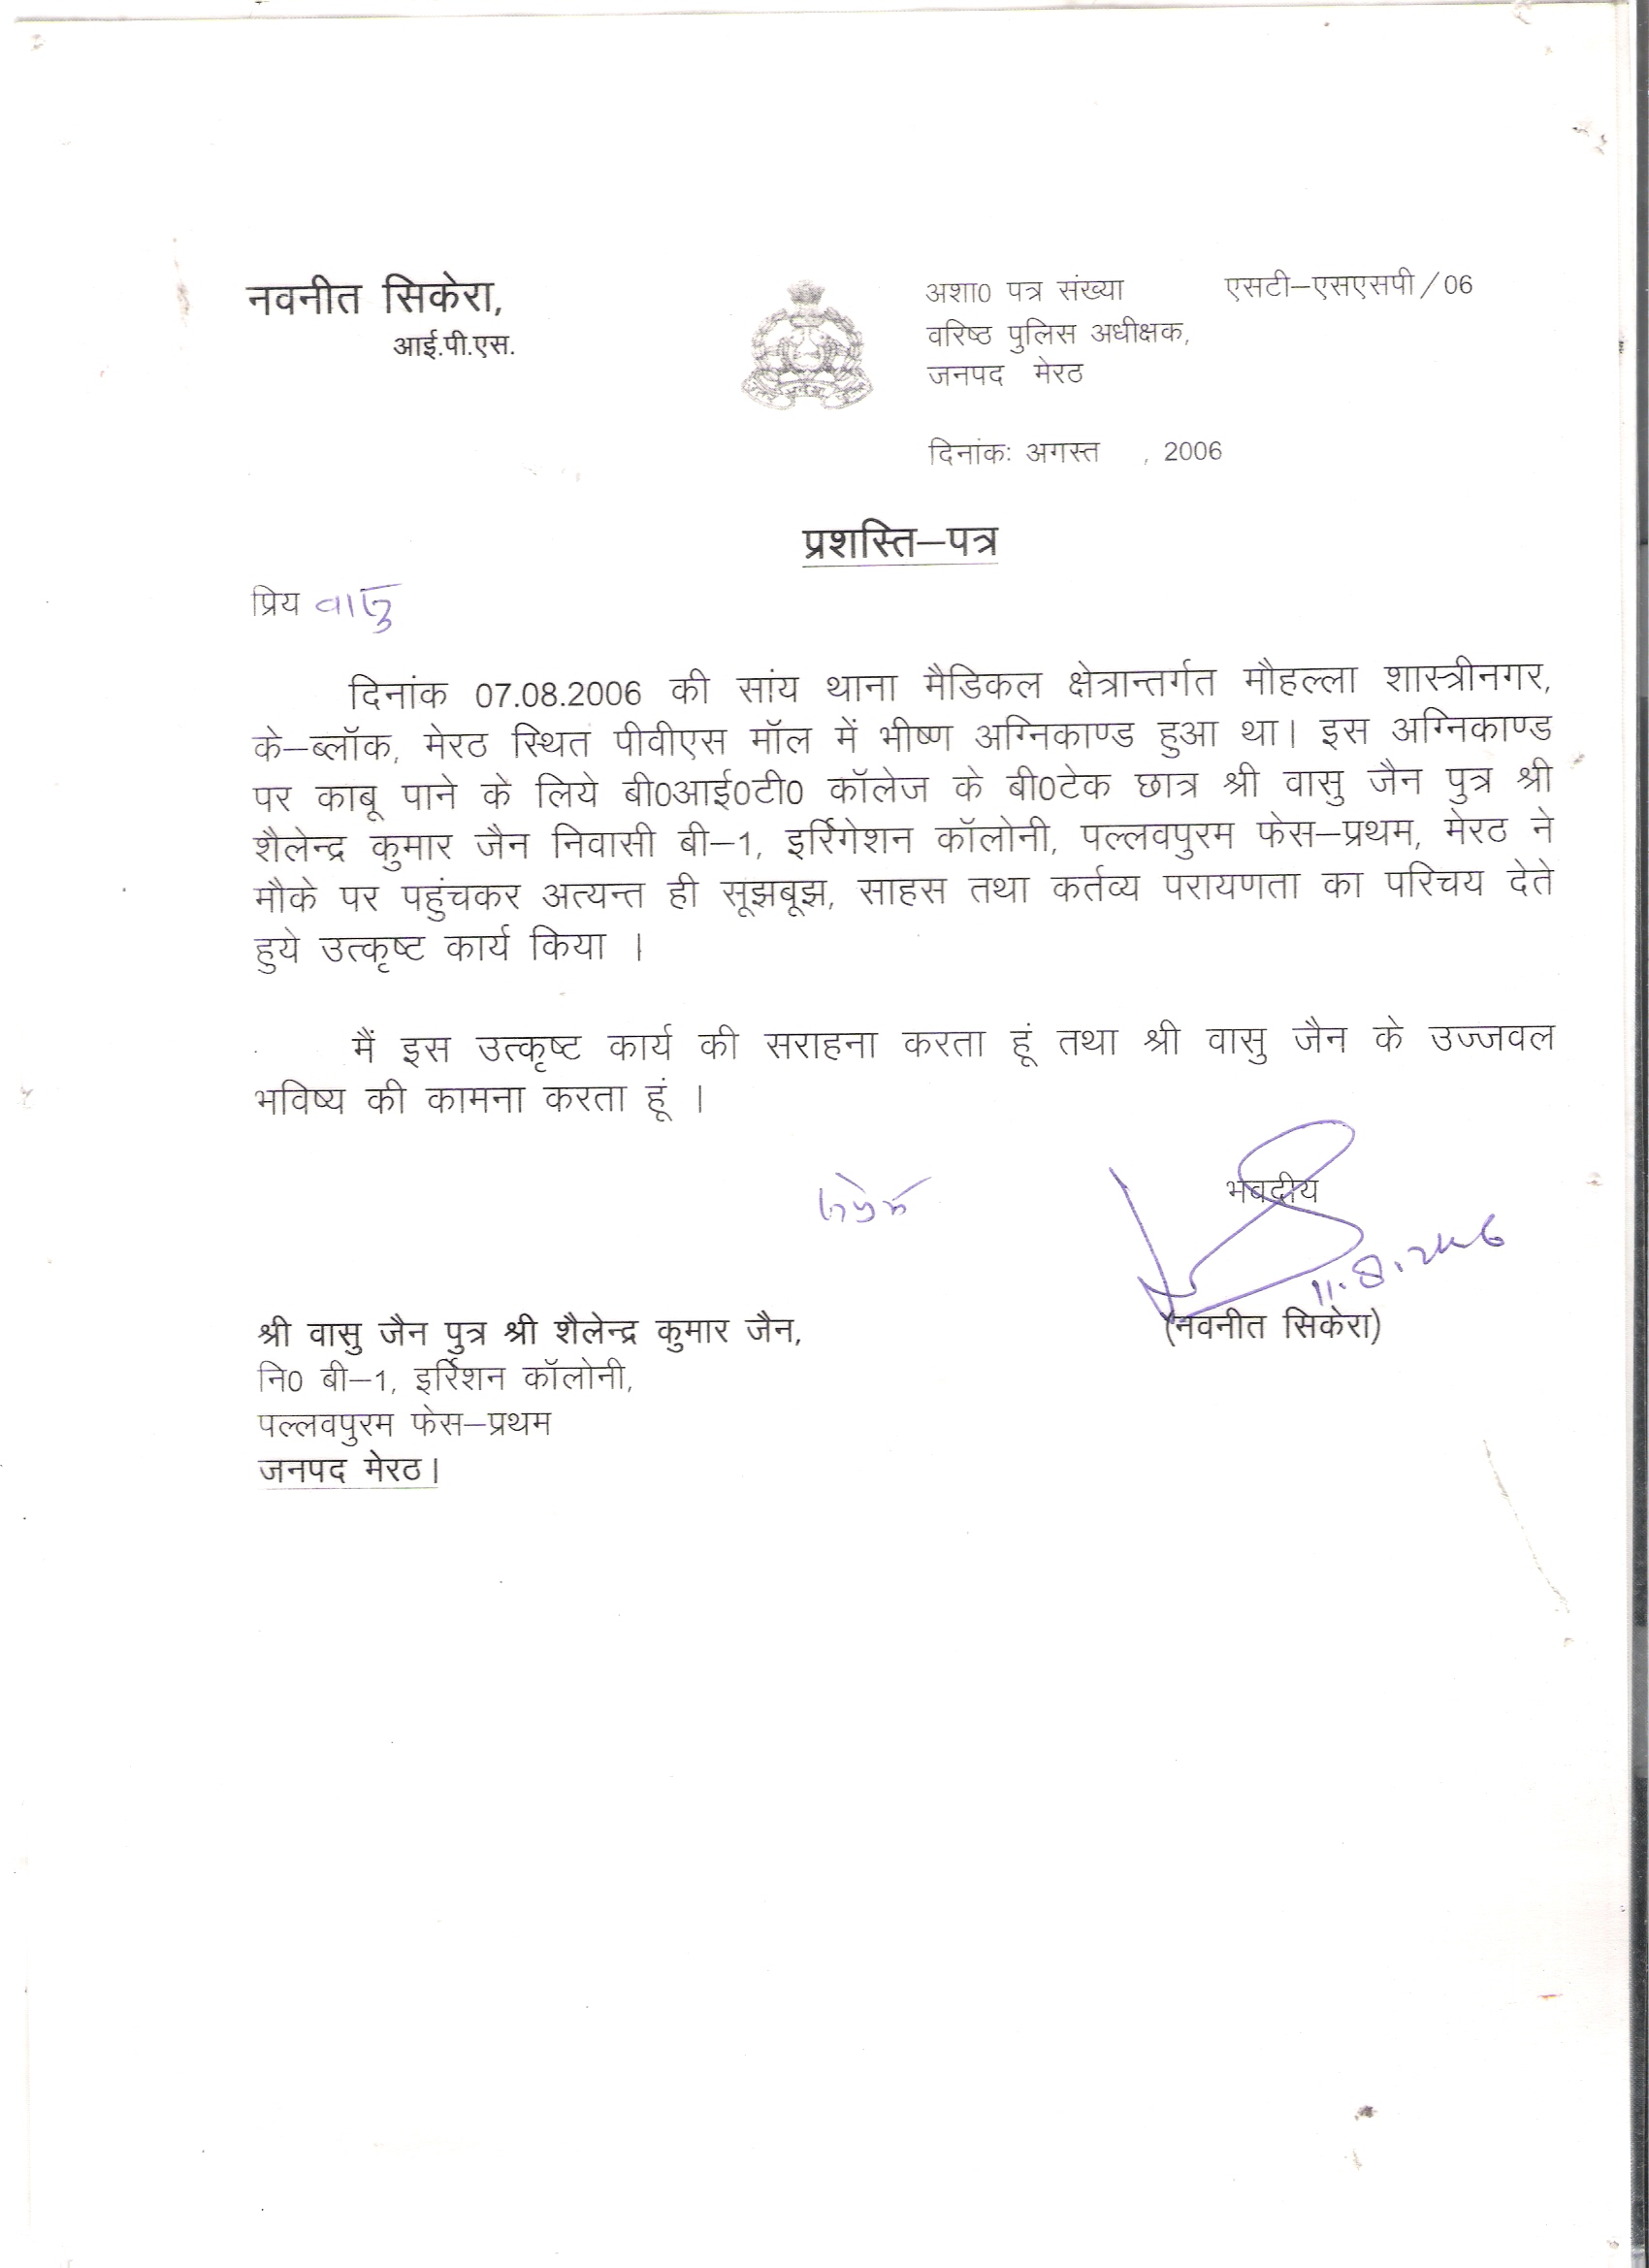 Vasu jains personal portfolio website awarded bravery certificate by senior superintendent of police meerut city college administration and resident welfare society for helping the district yadclub Image collections